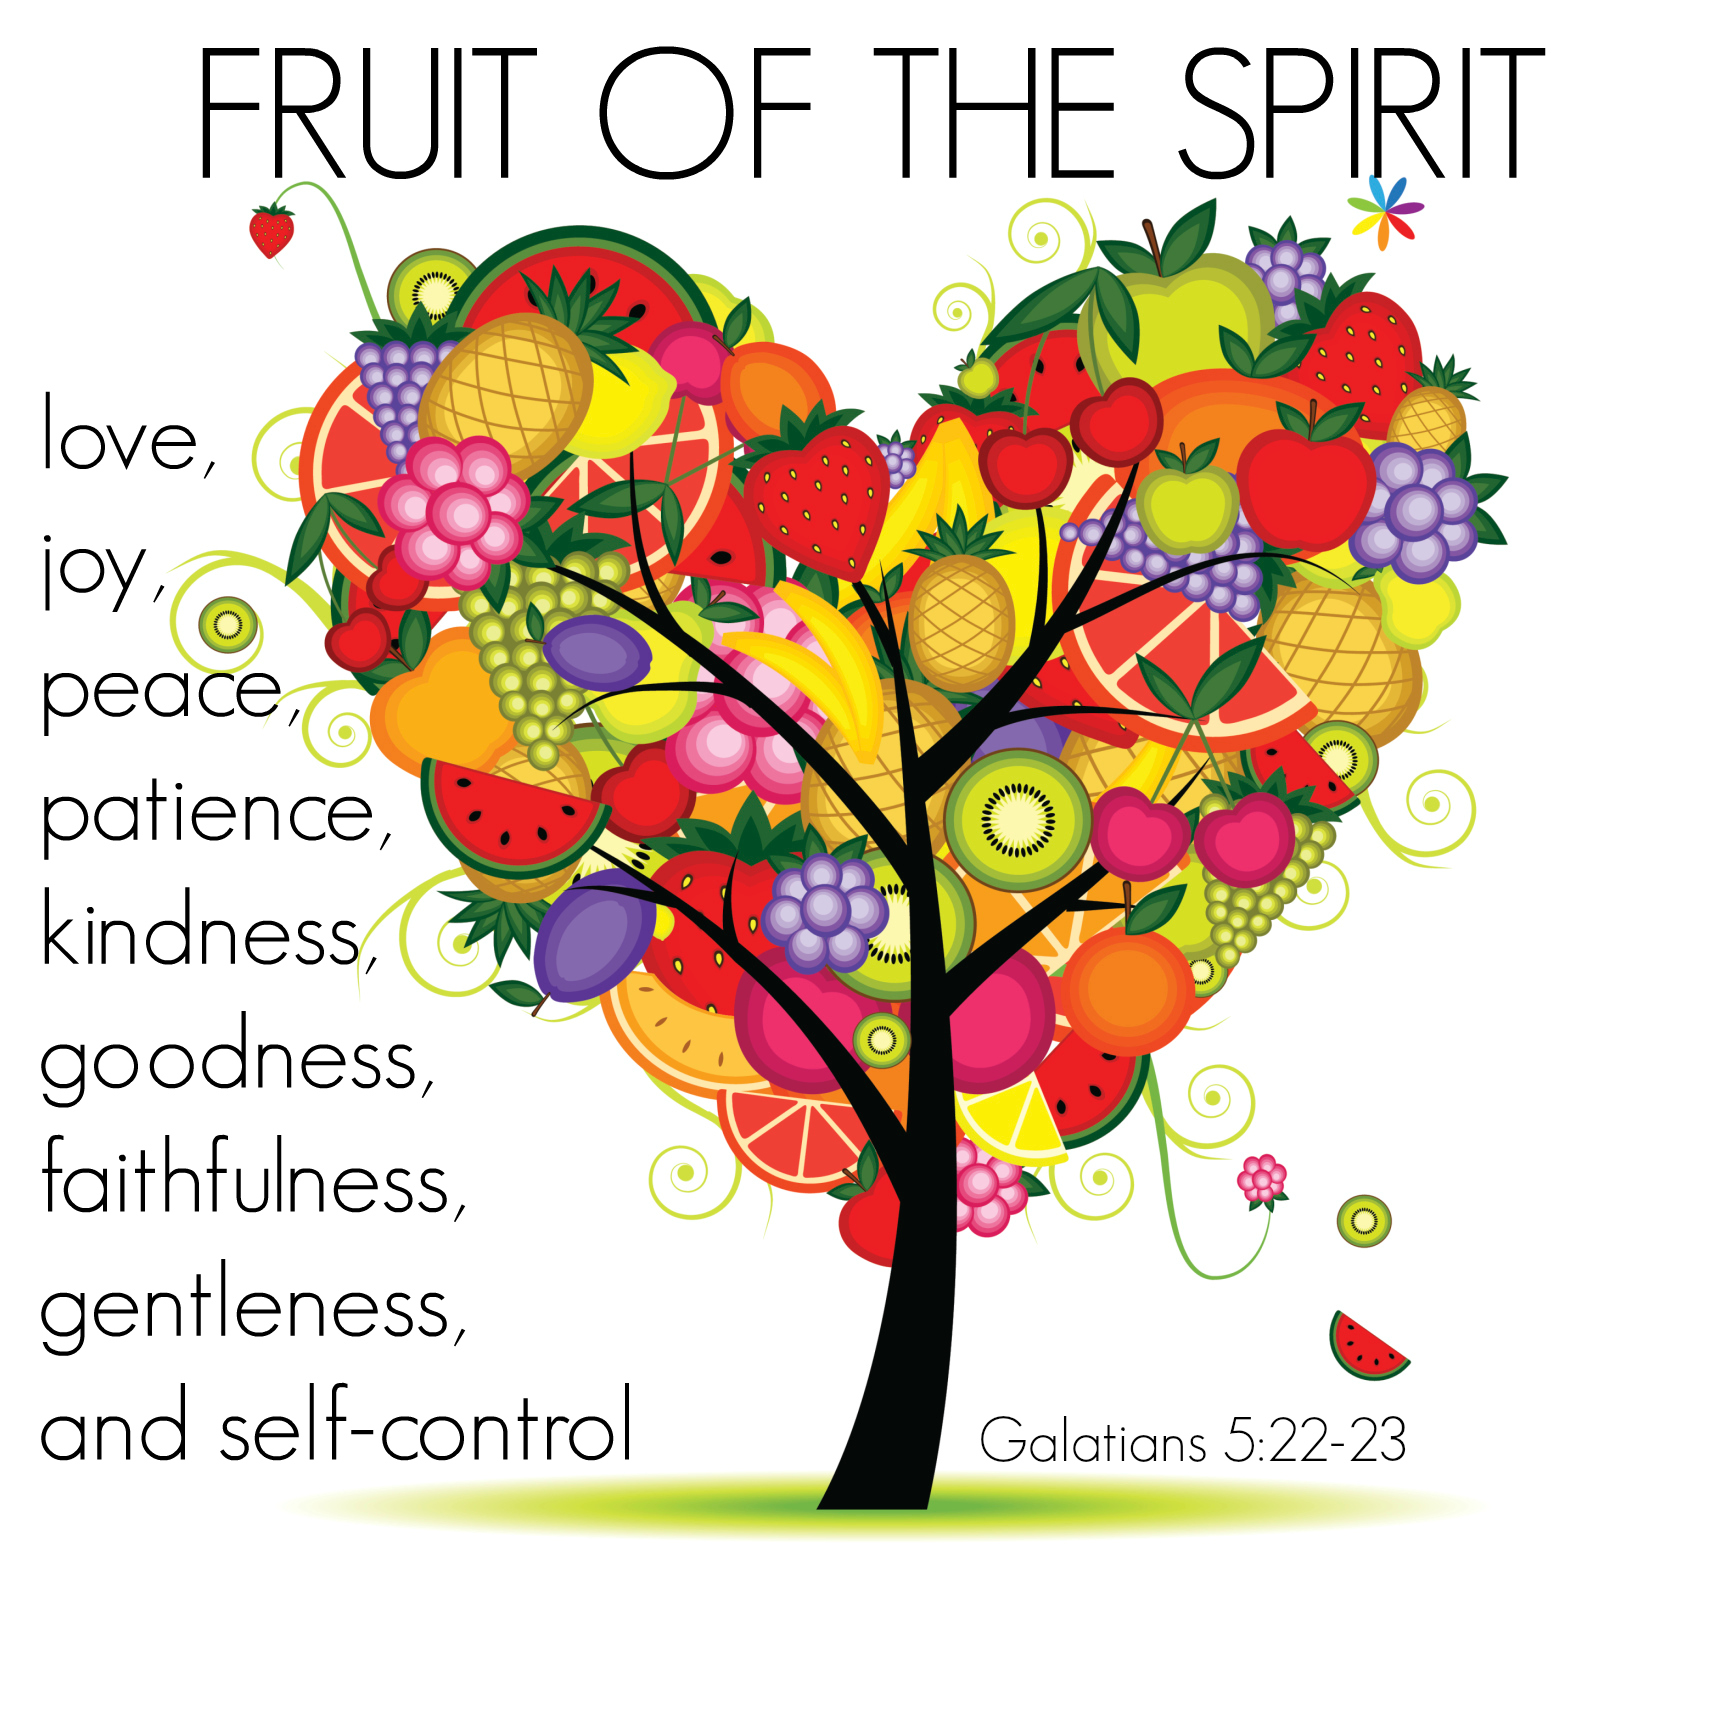 Grow Your Fruit Bibleverse 16th January